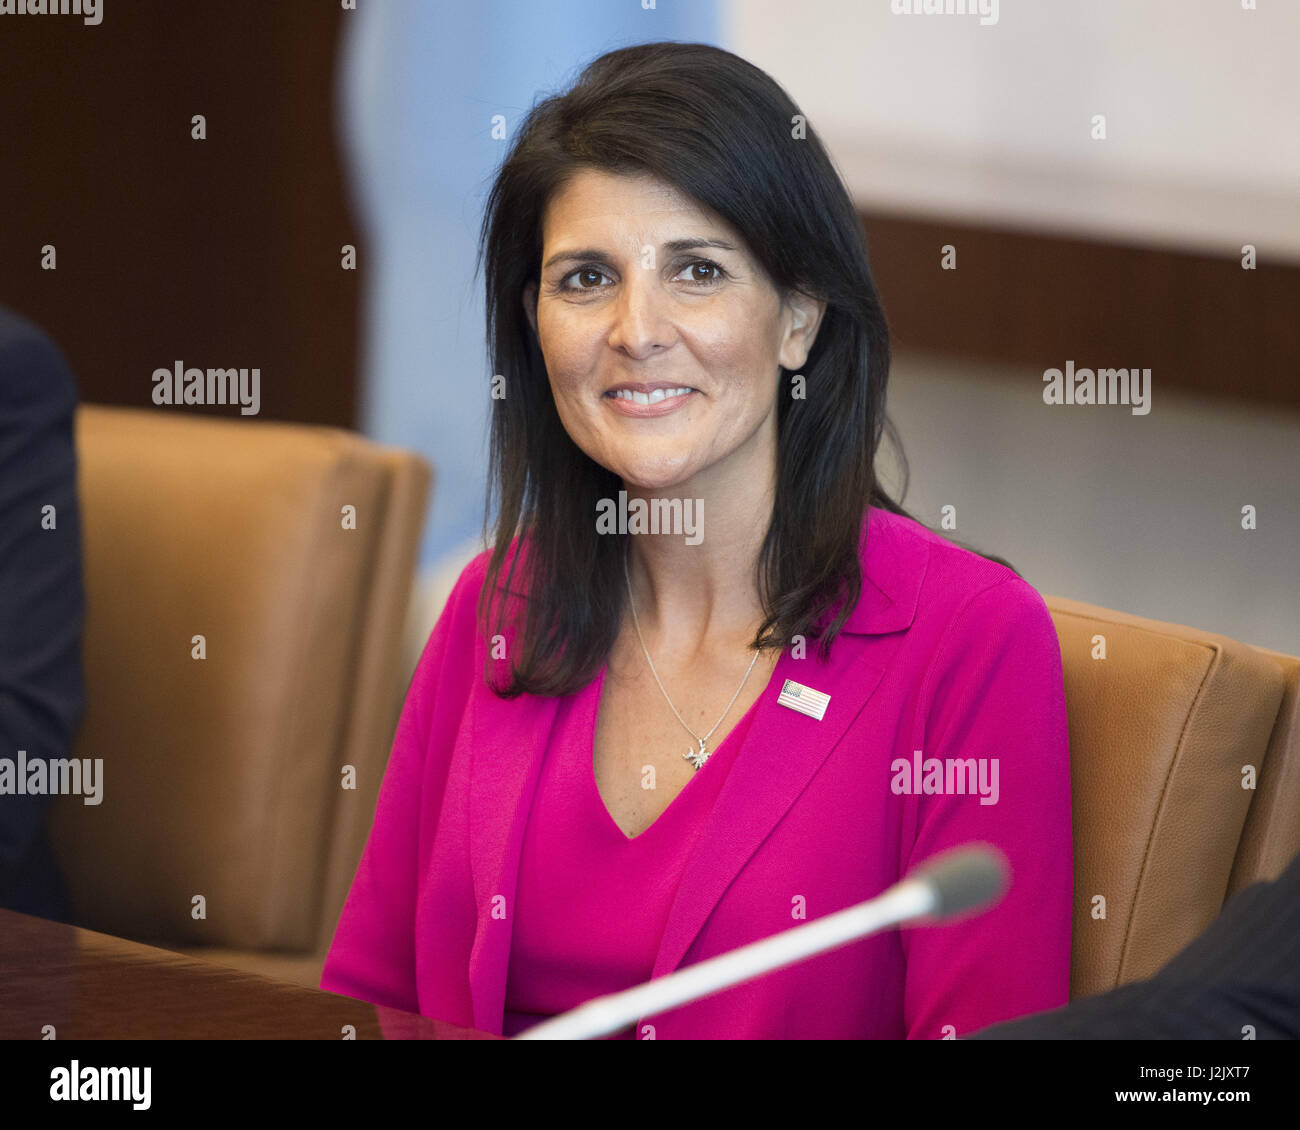 New York, NY, USA. 28th Apr, 2017. NIKKI HALEY, US Ambassador the to the UN, at the United Nations Credit: Michael - Stock Image